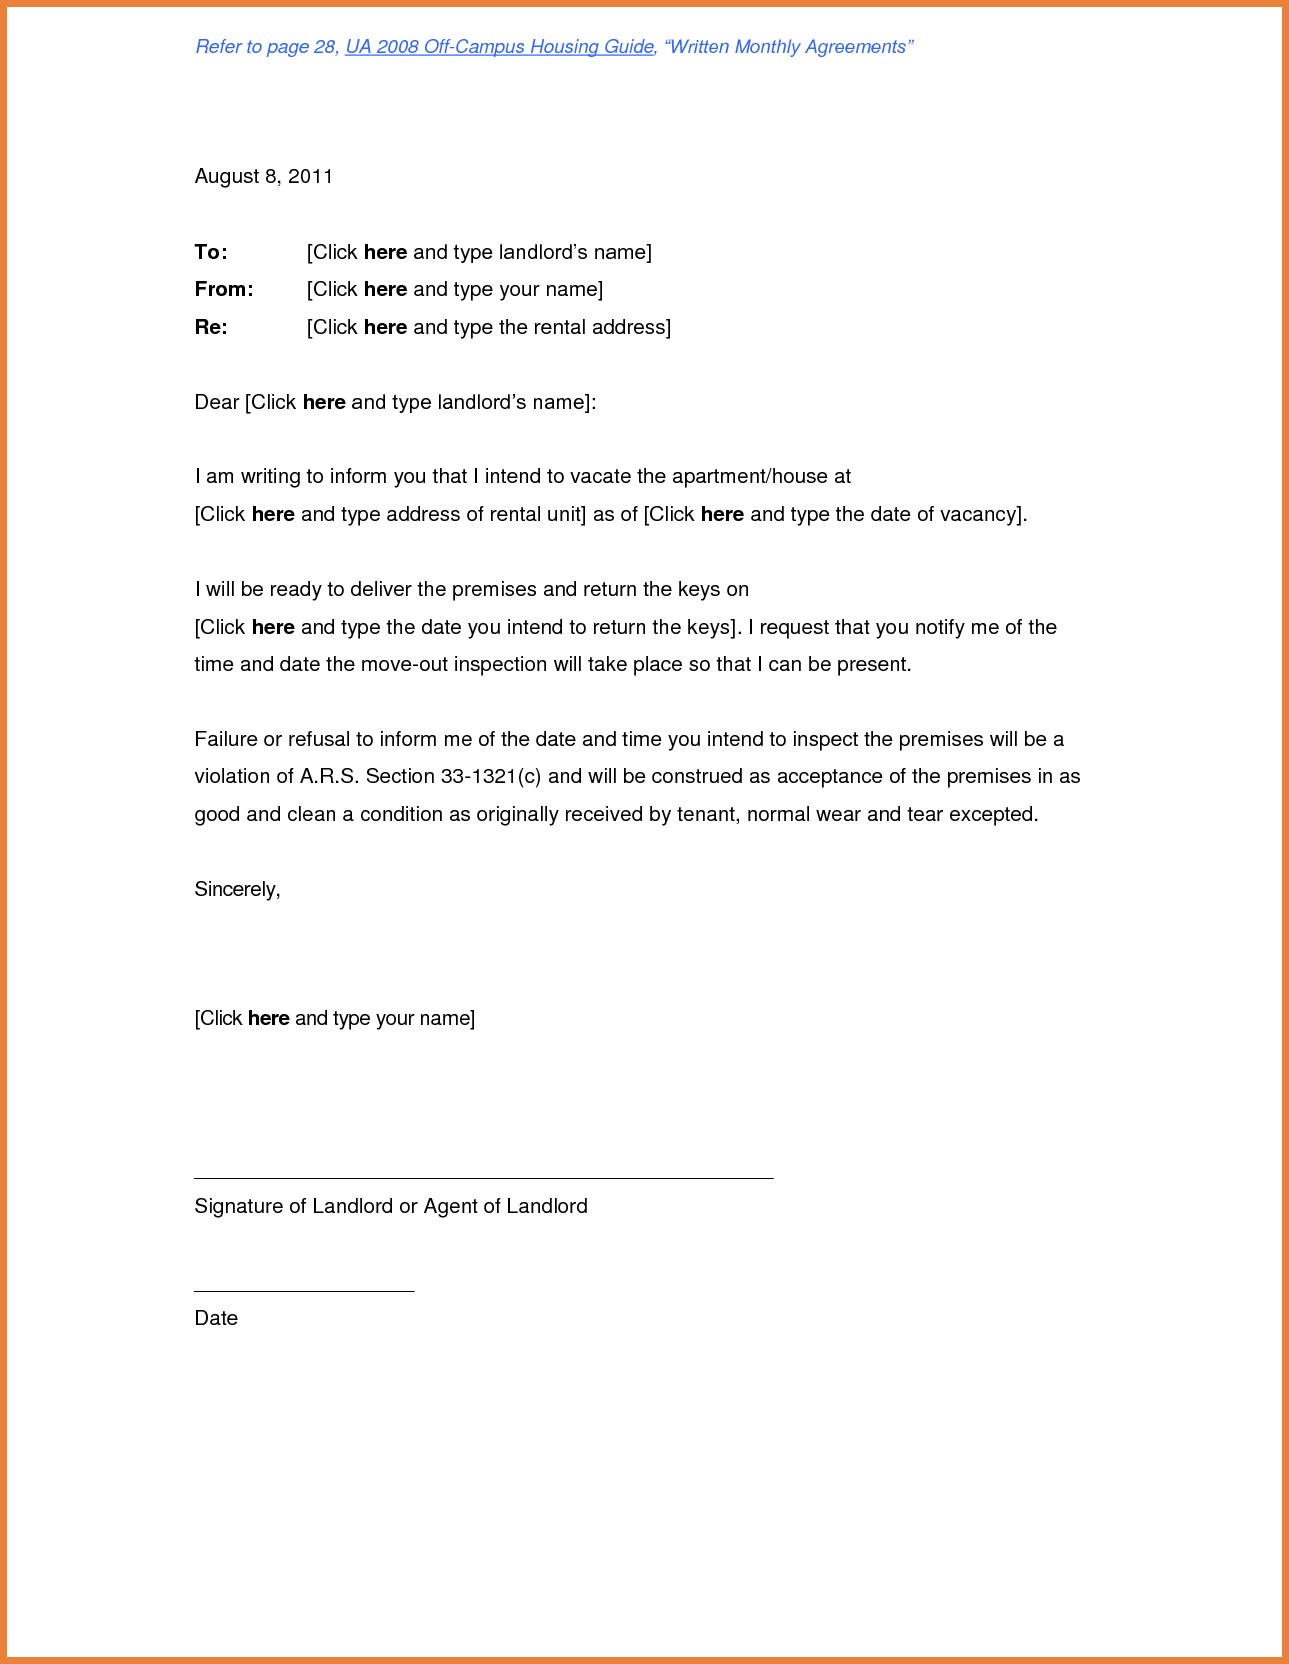 Landlord Property Inspection Letter Template - Property Inspection Letter to Tenant Uk Archives Best 18 Elegant